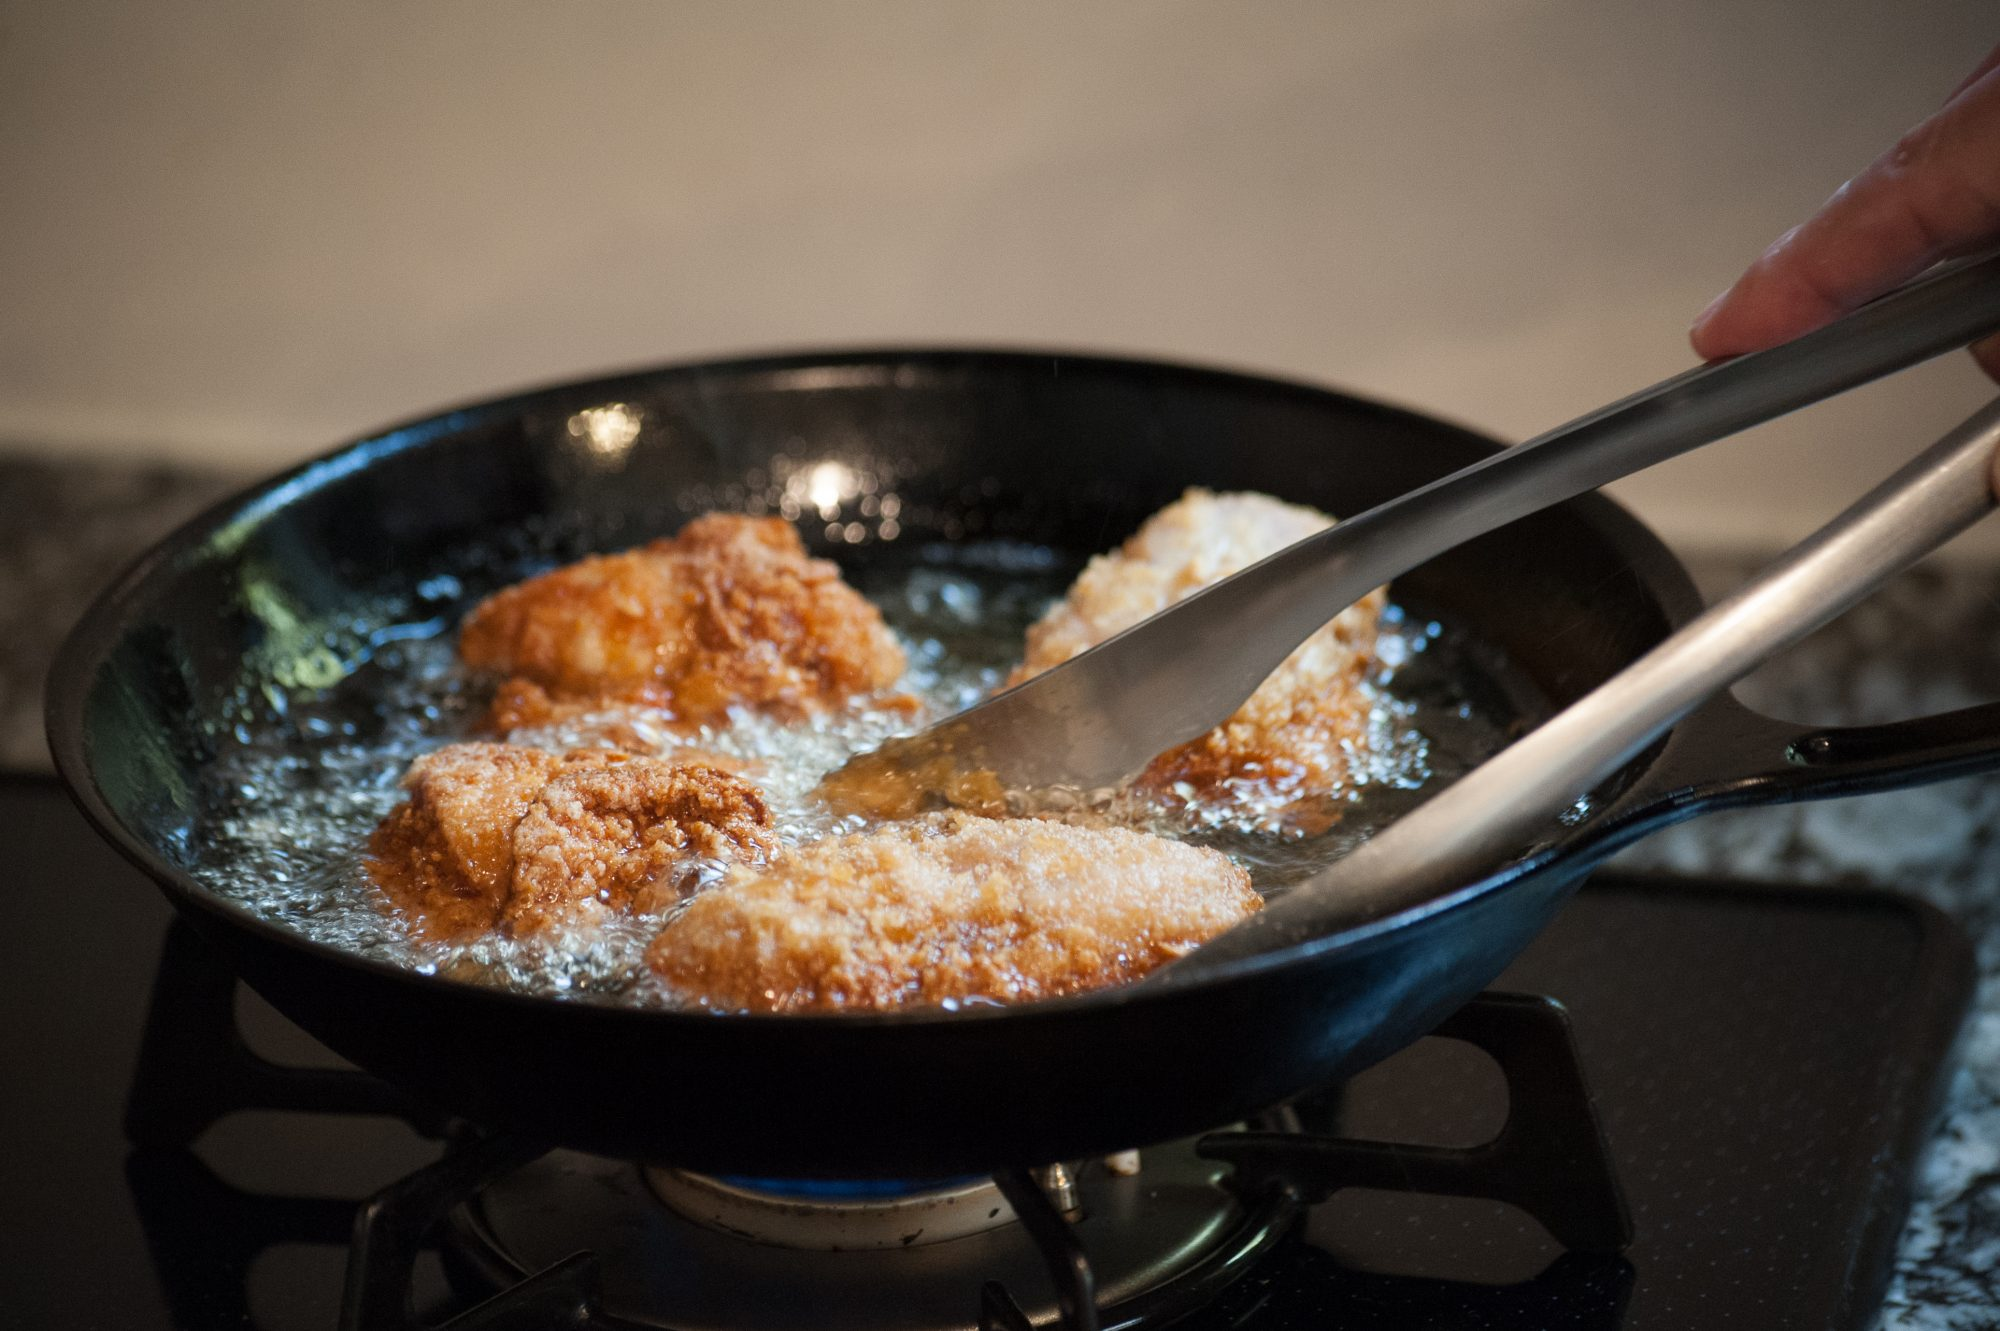 Cooking fried chicken